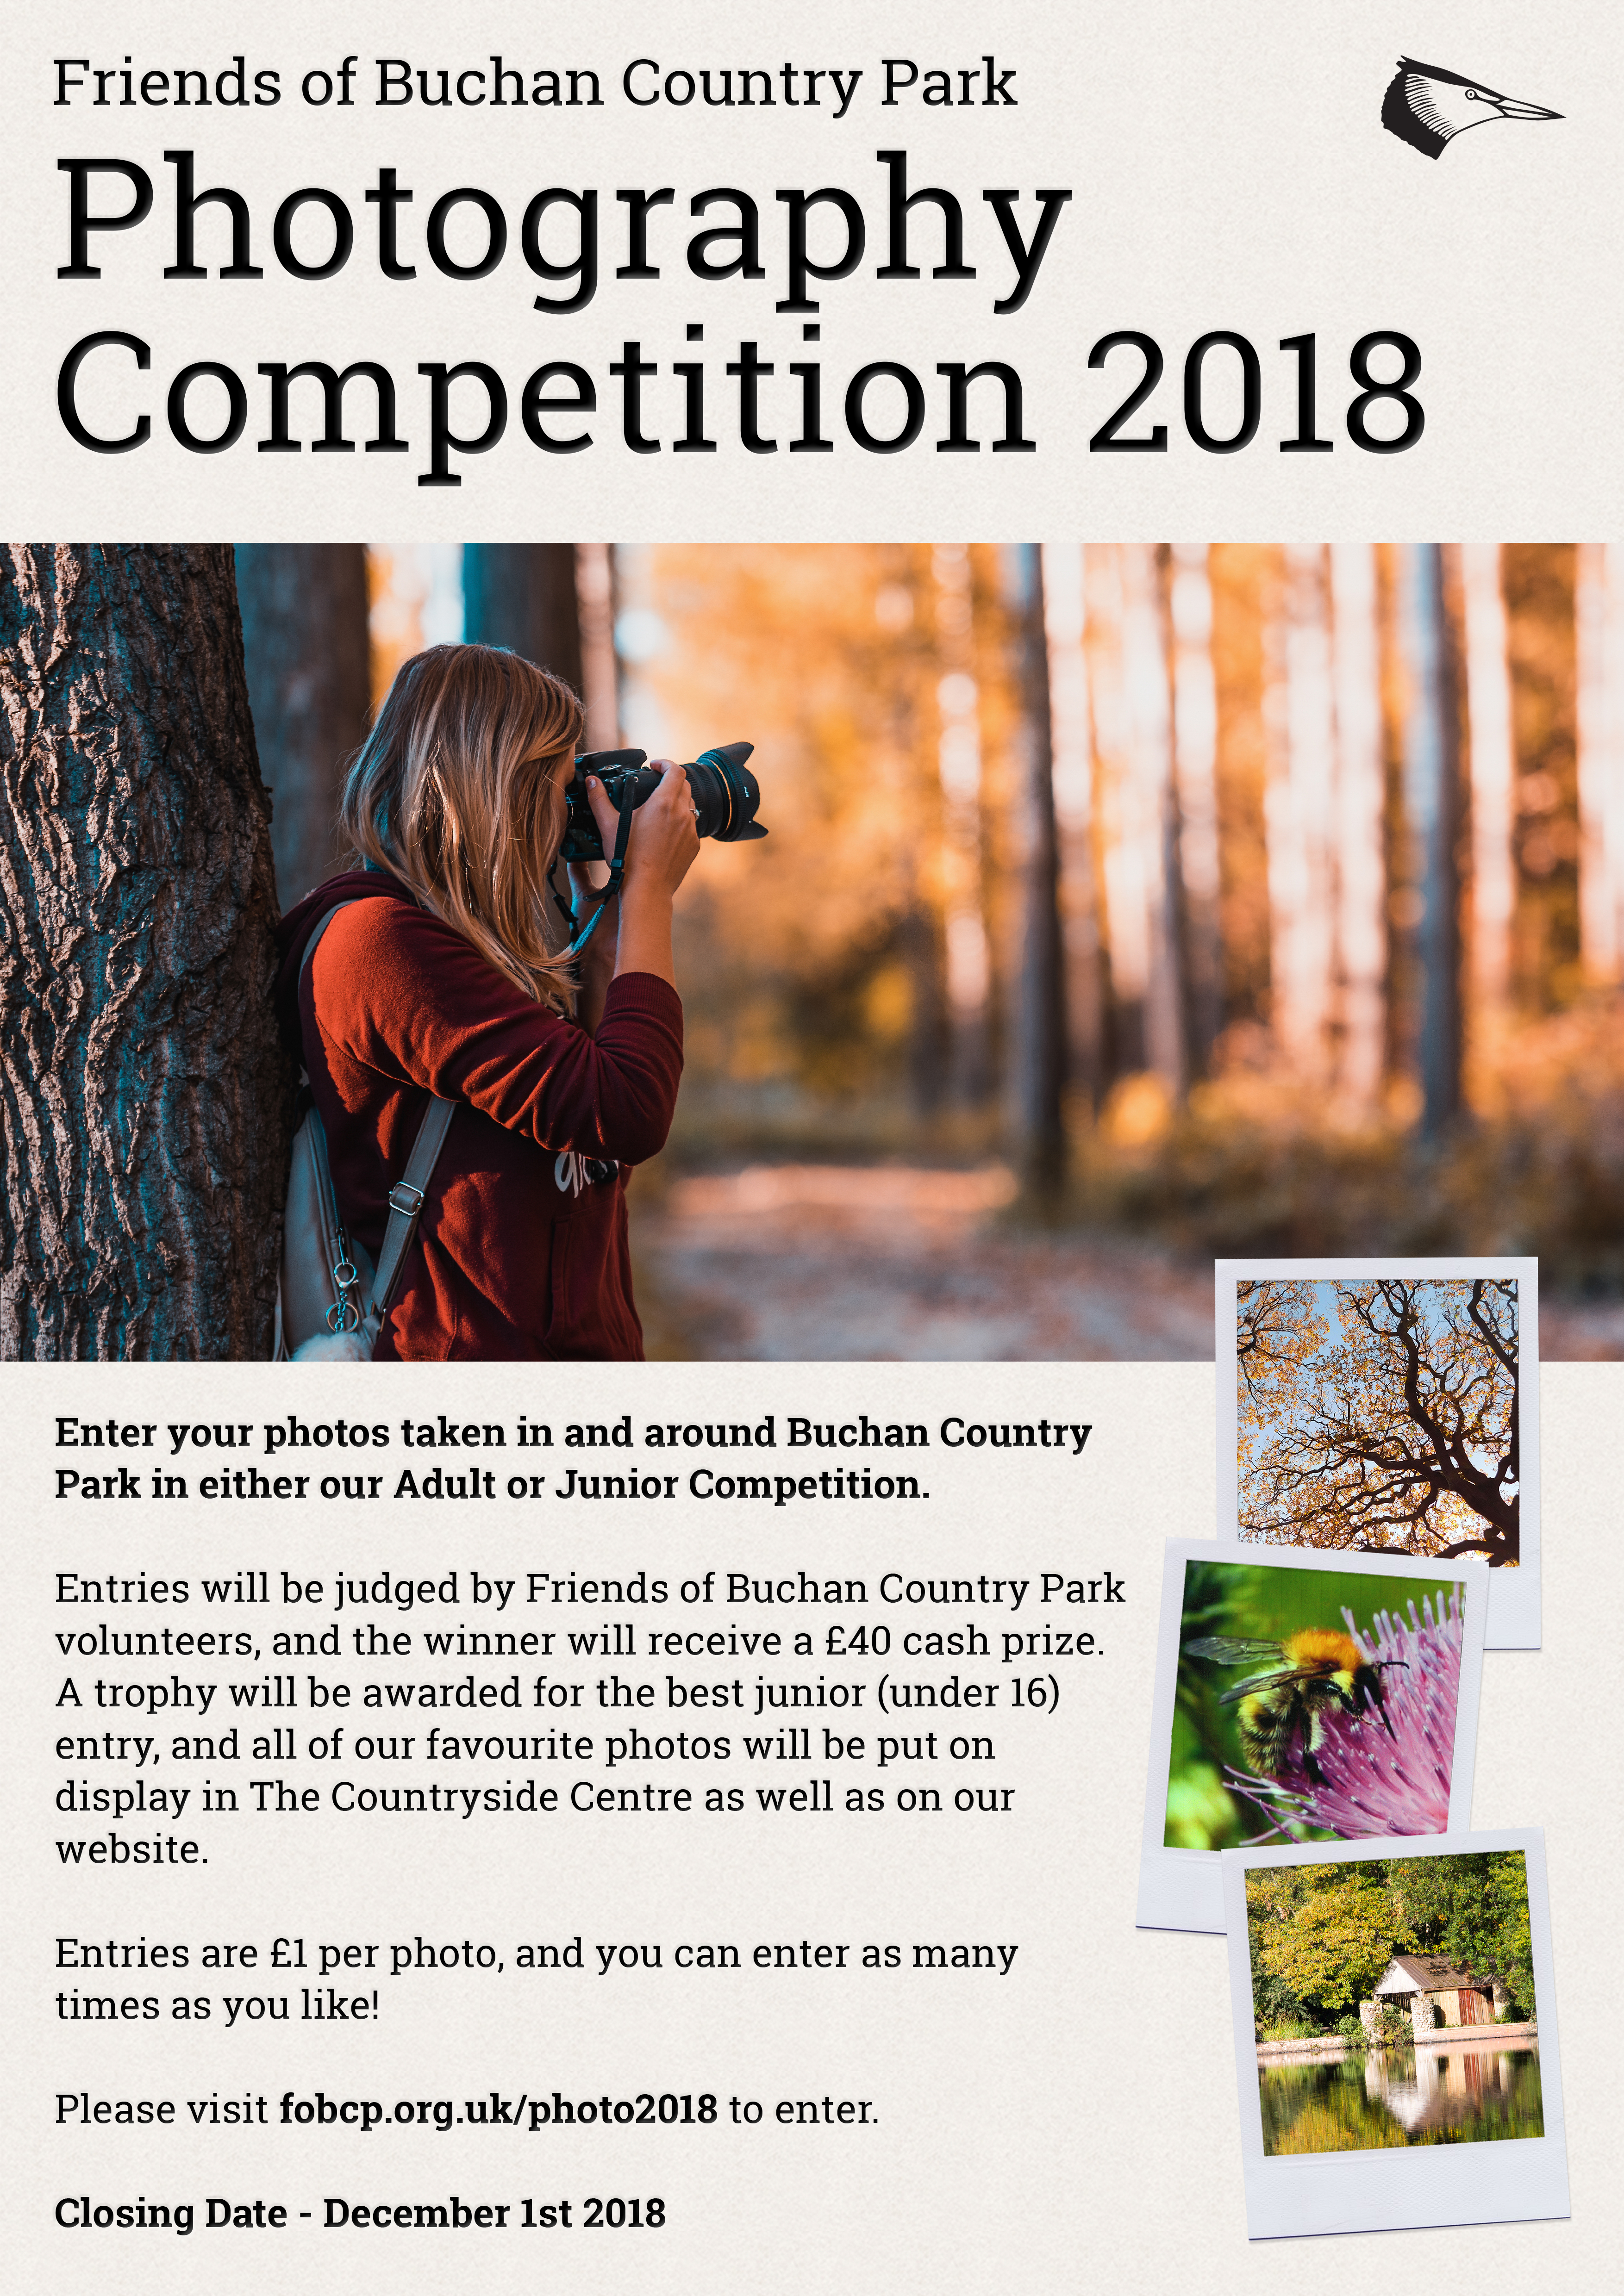 Friends of Buchan Country Park Photo Competition 2018